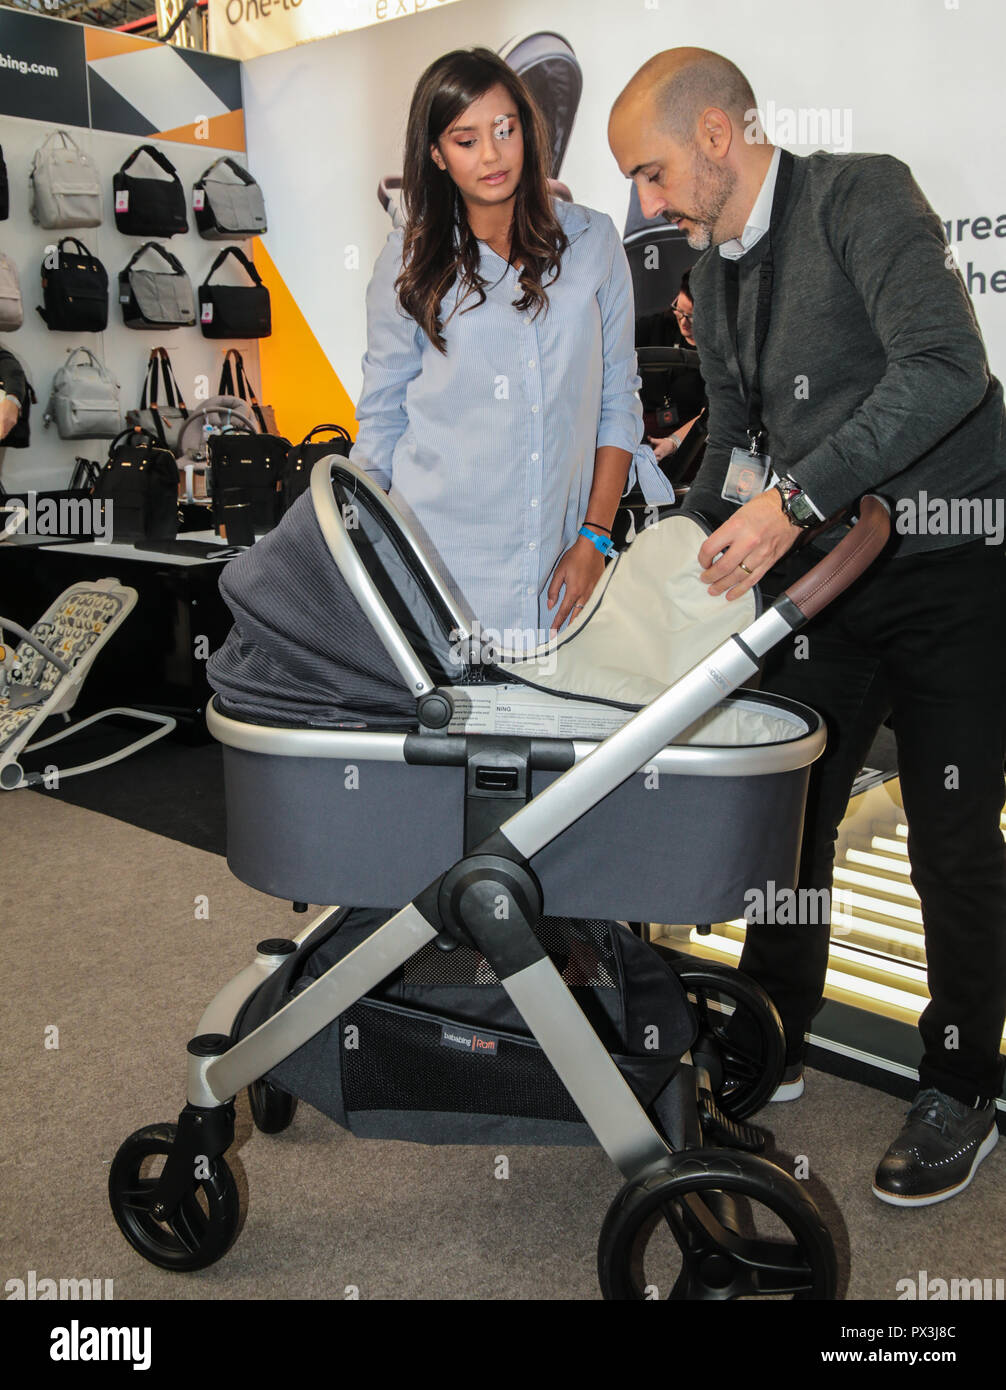 London Uk 19 October 2018 Tyla Carr Former Love Island contestant model from Surrey visiting The Baby Show in the Olympia center today ,billed as ' The UK's favourite shopping event for new and expectant parents' with the presence of the biggest name in the high street to the biggest name in celebrities parents Credit: Paul Quezada-Neiman/Alamy Live News - Stock Image